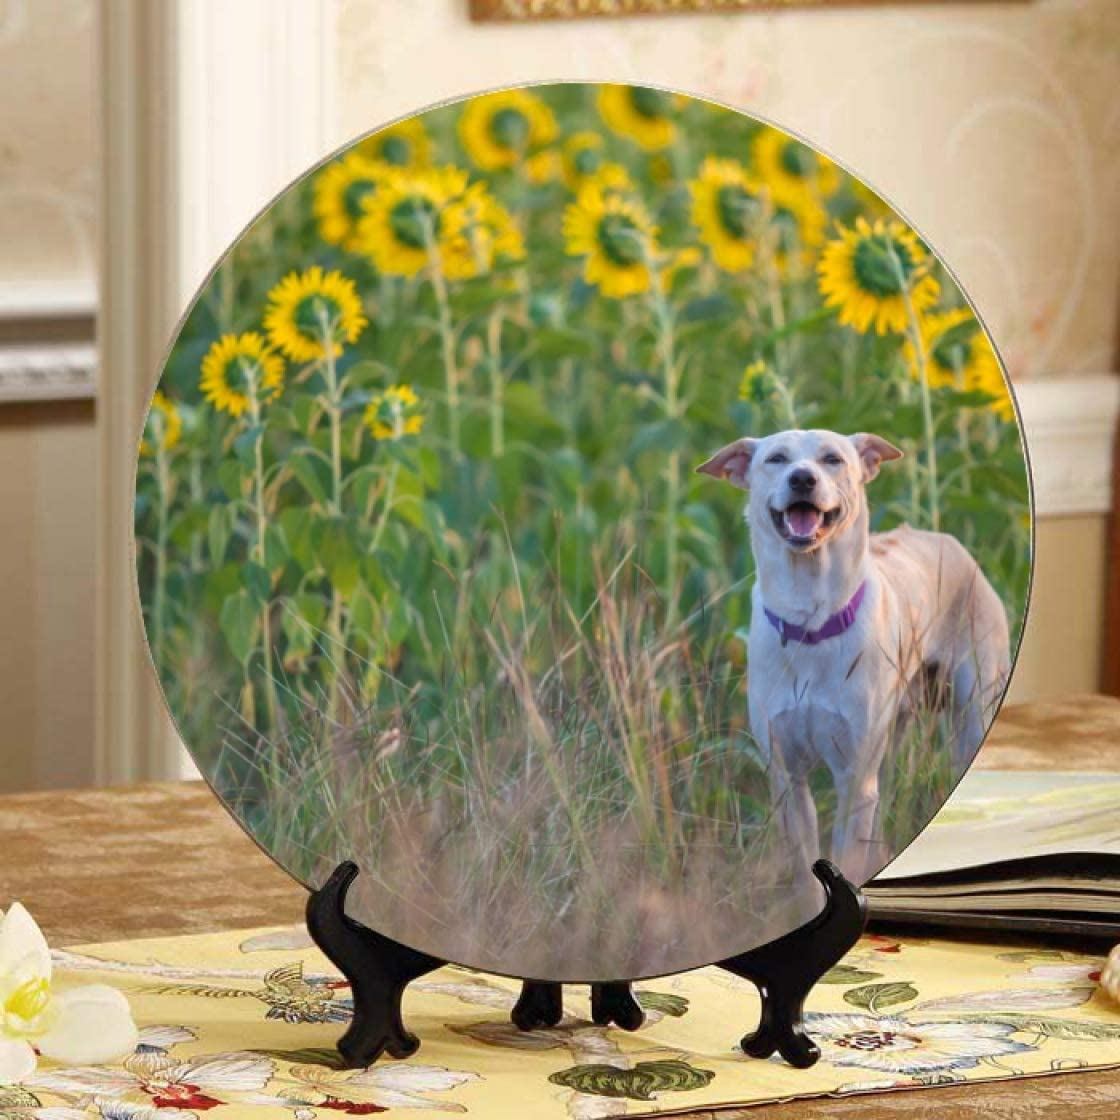 Lajro Happy sale Dog in Sunflower Challenge the lowest price of Japan Table Plate Decorations Decor Field